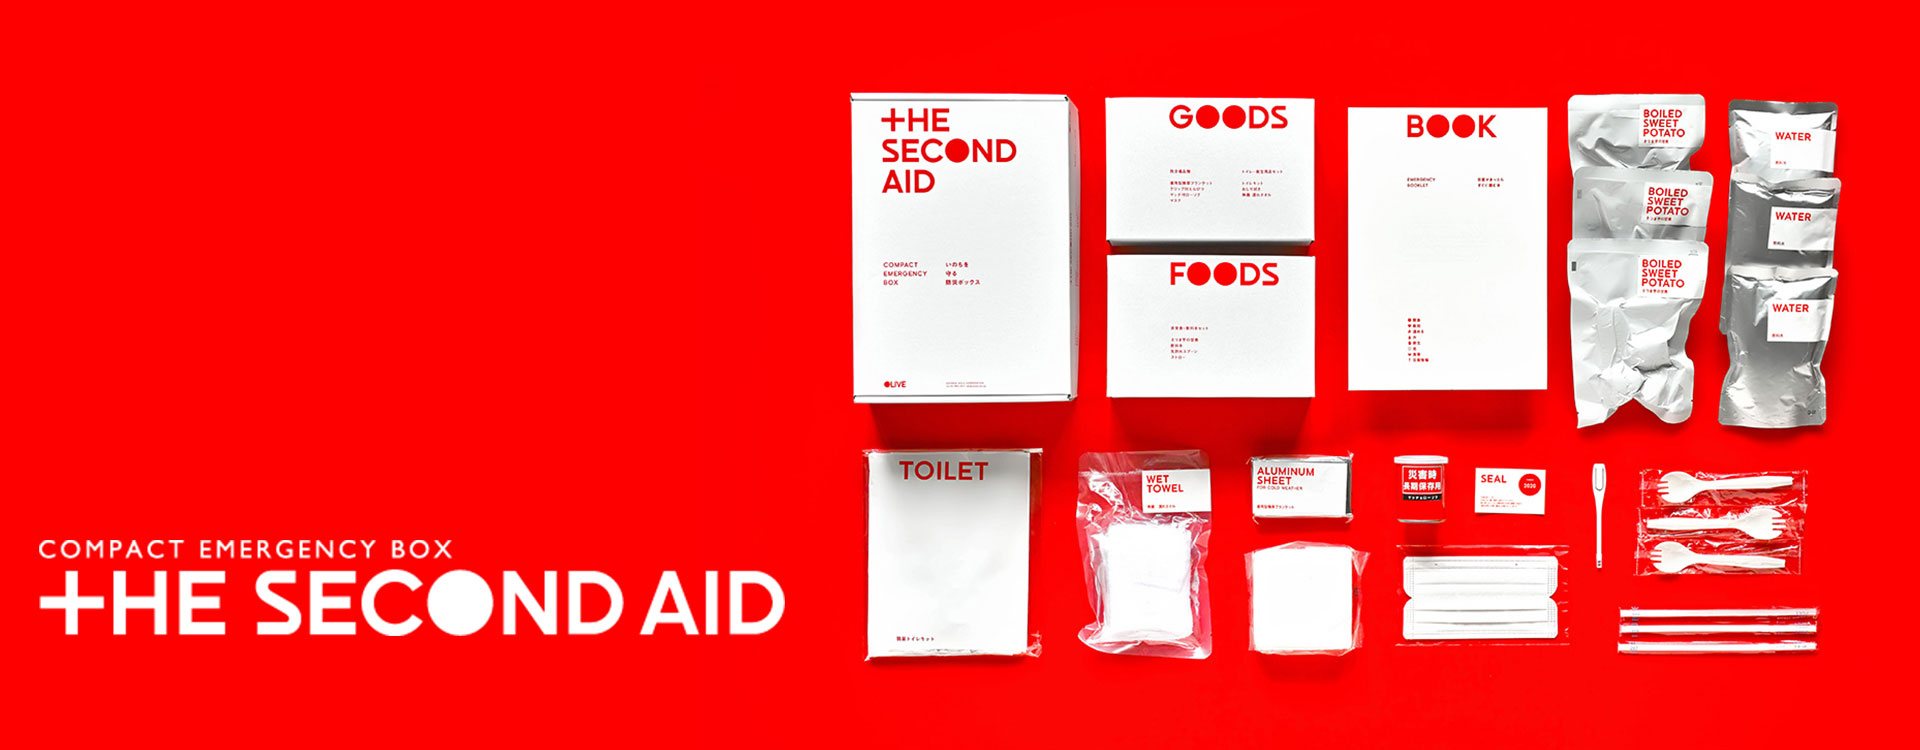 THE SECOND AID